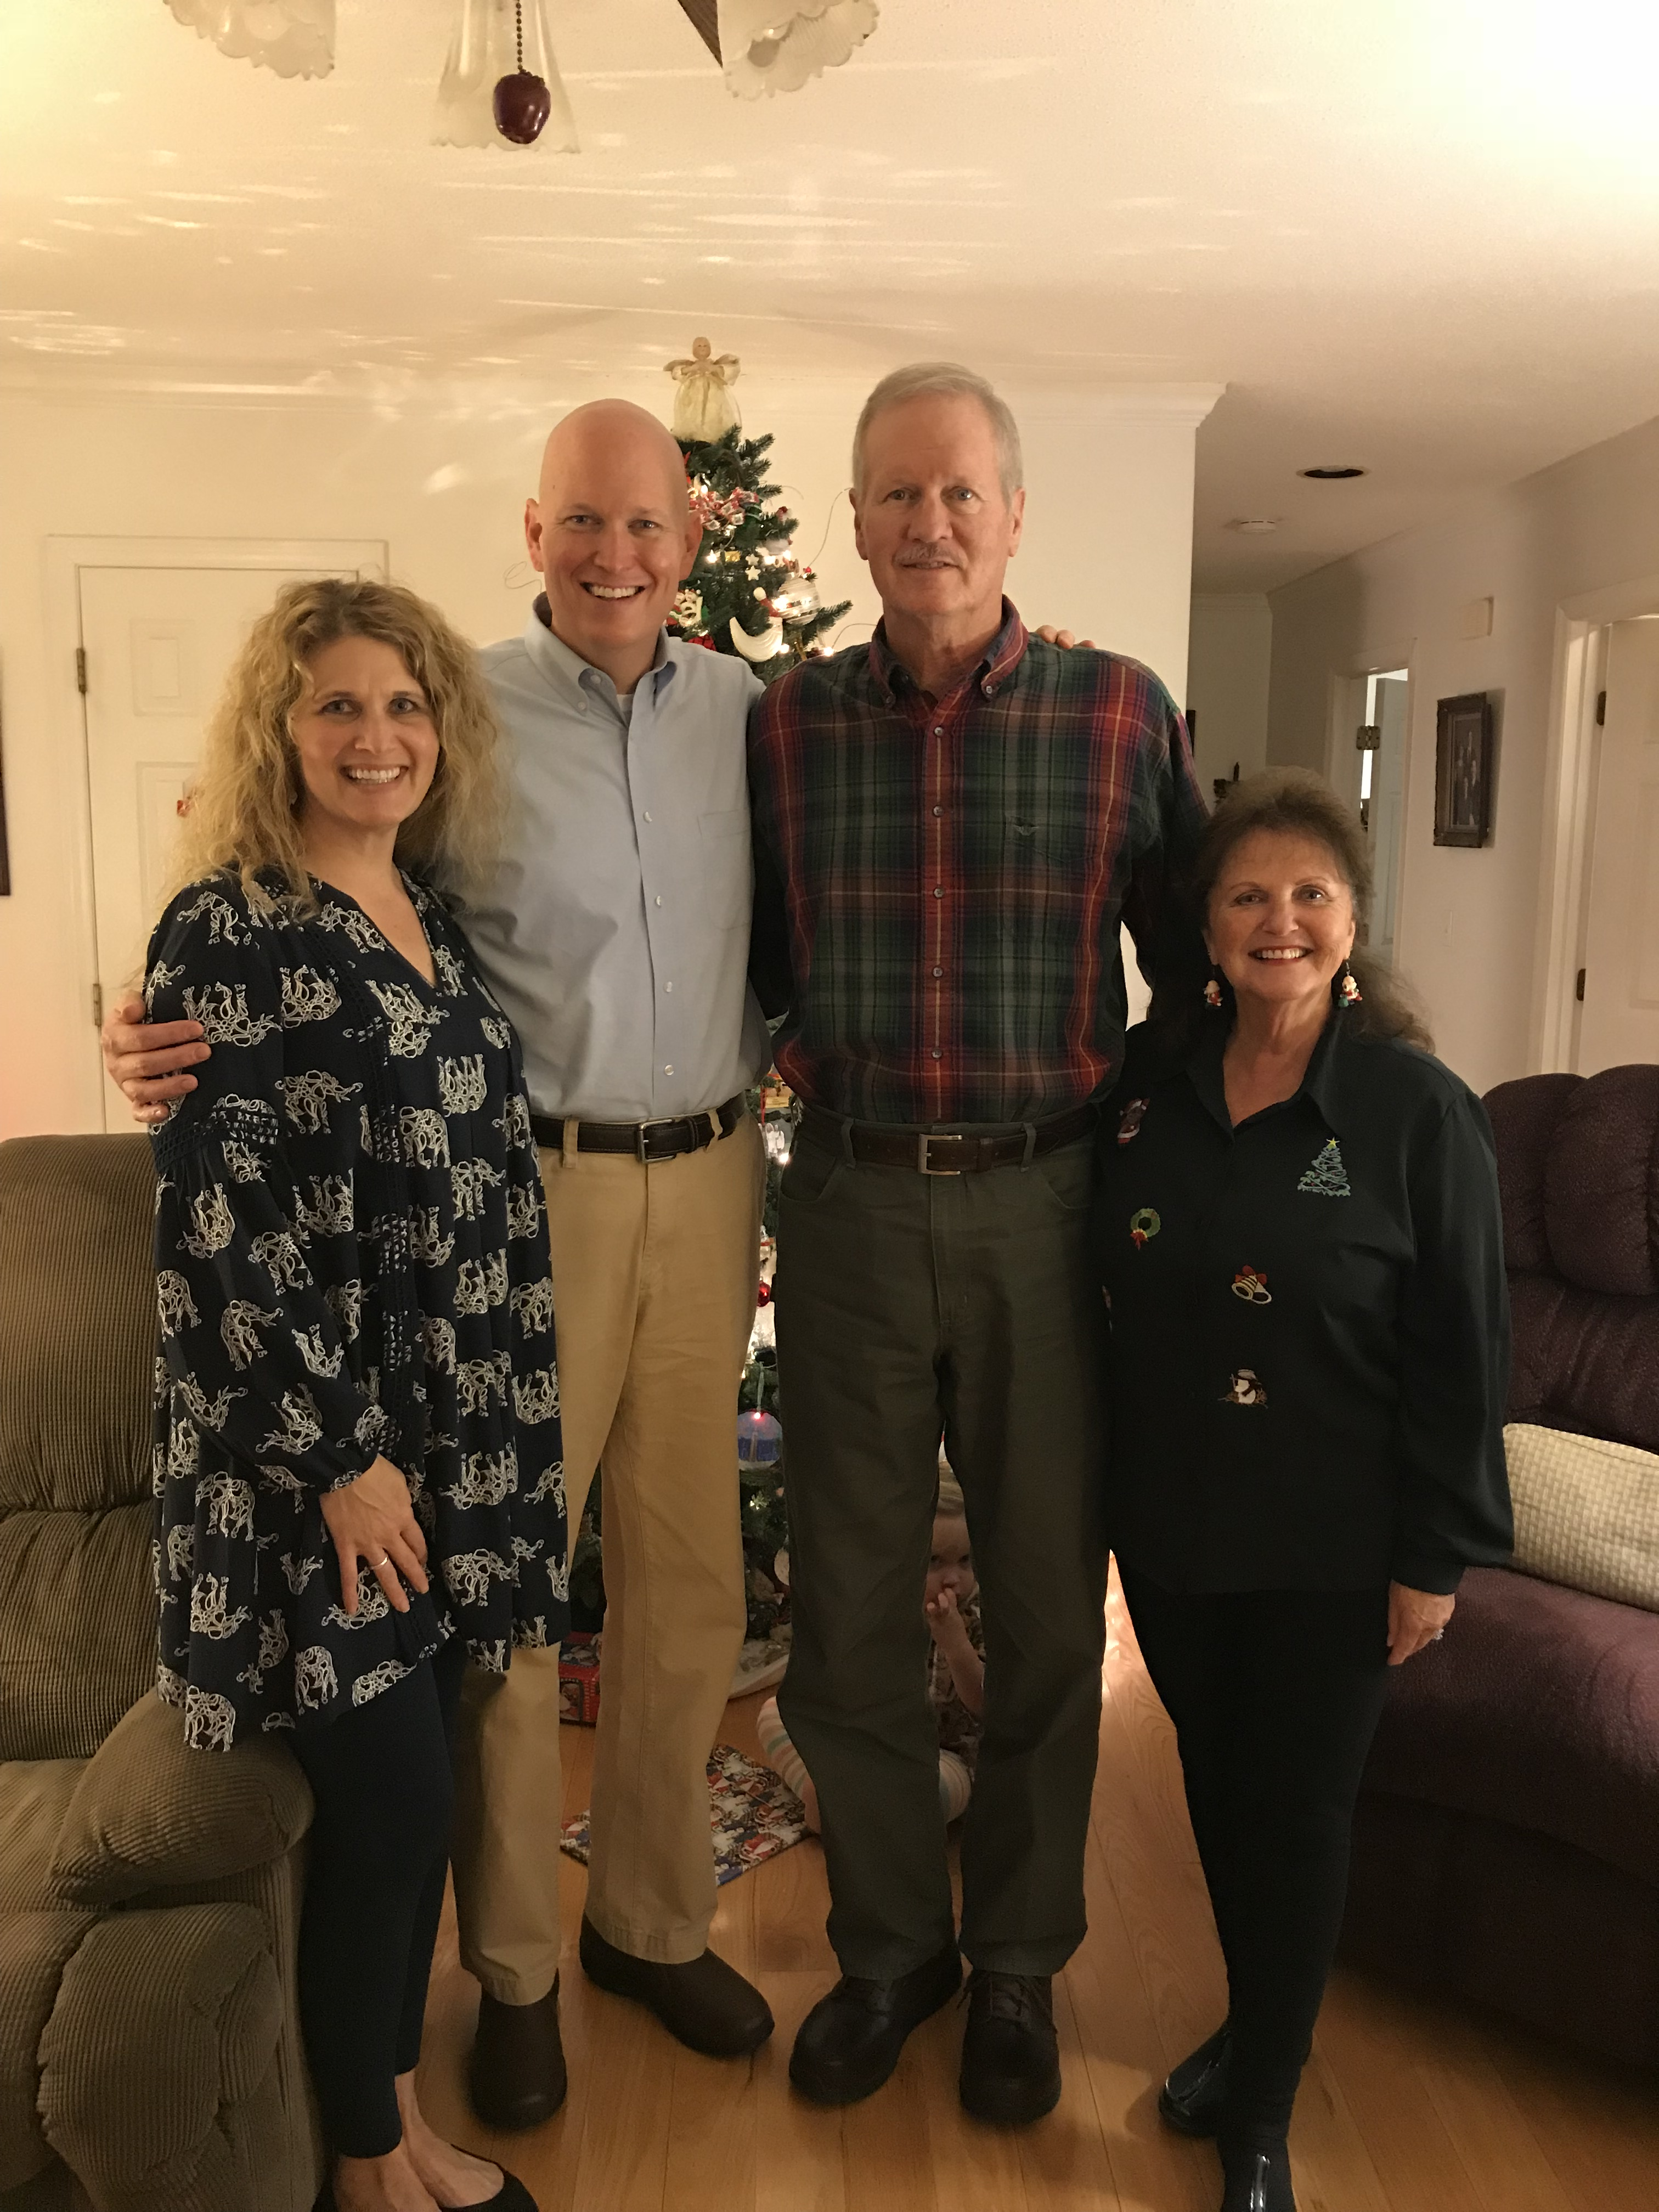 A Mom and a Dad,' And 'Changed Lives' | D Kevin Brown's Blog